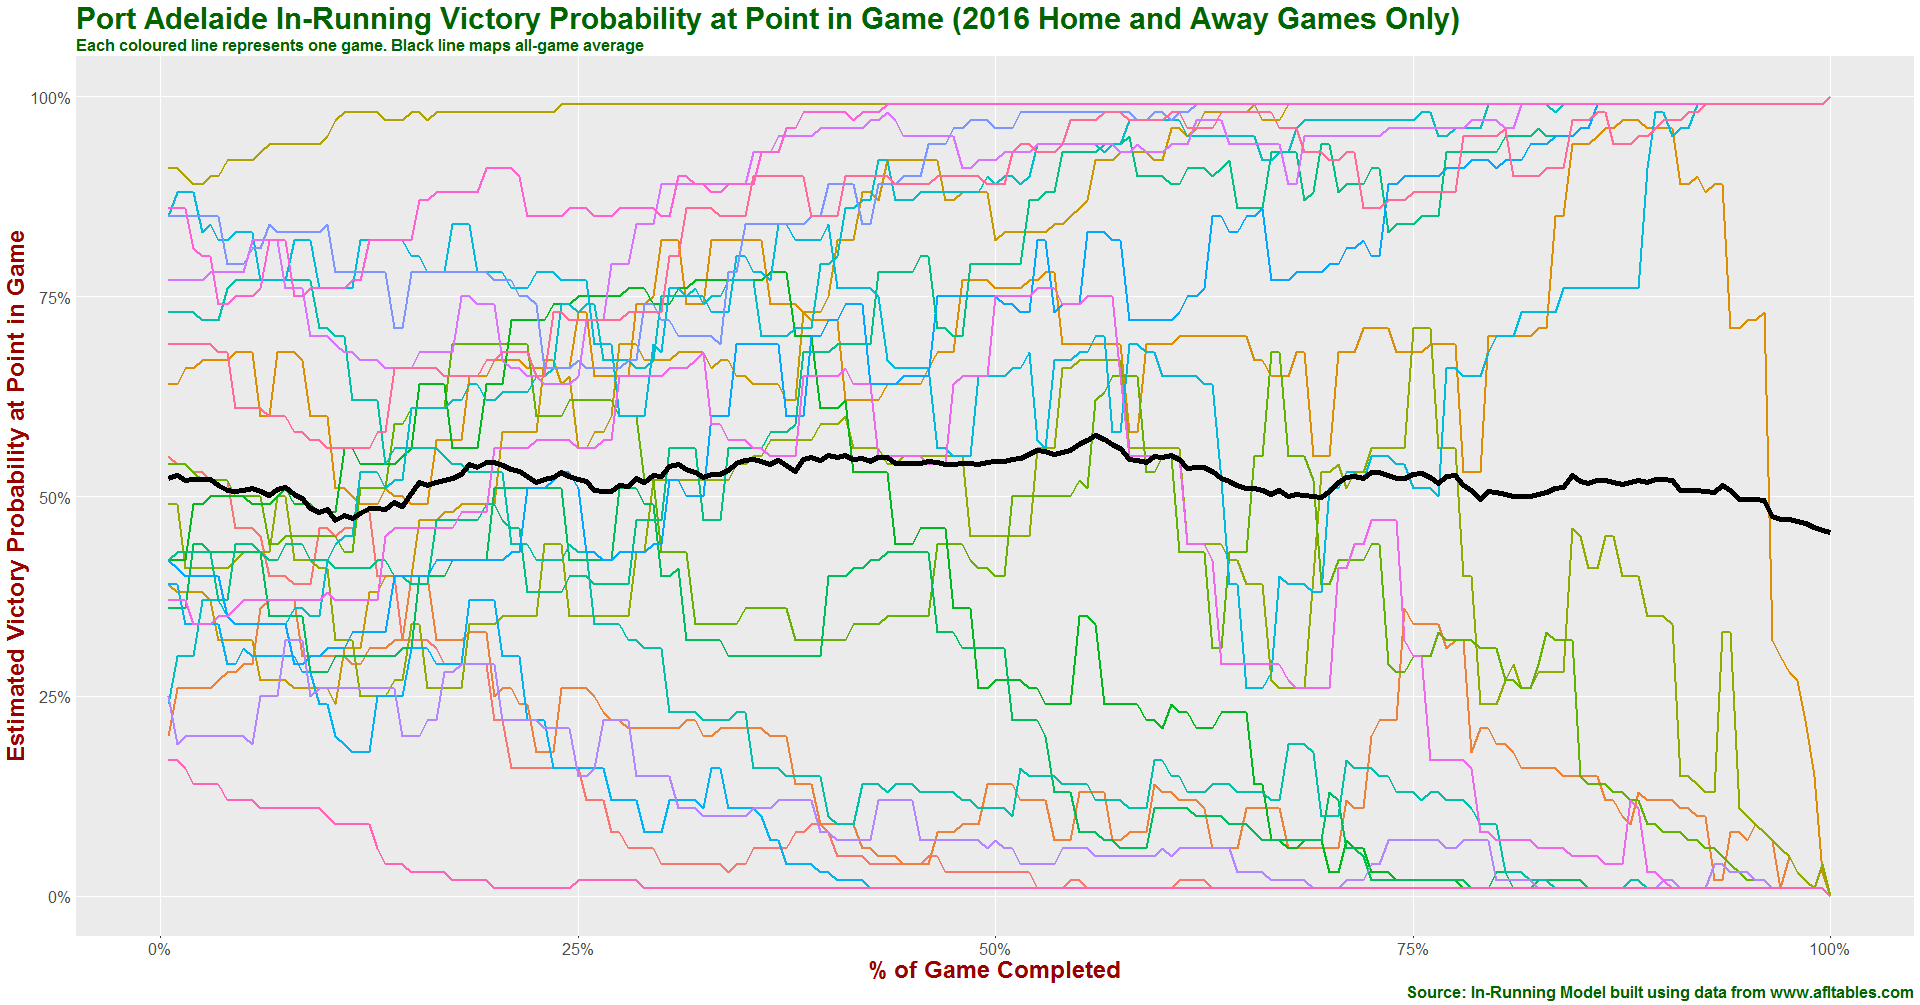 Port Adelaide in-running prob history 2016.png